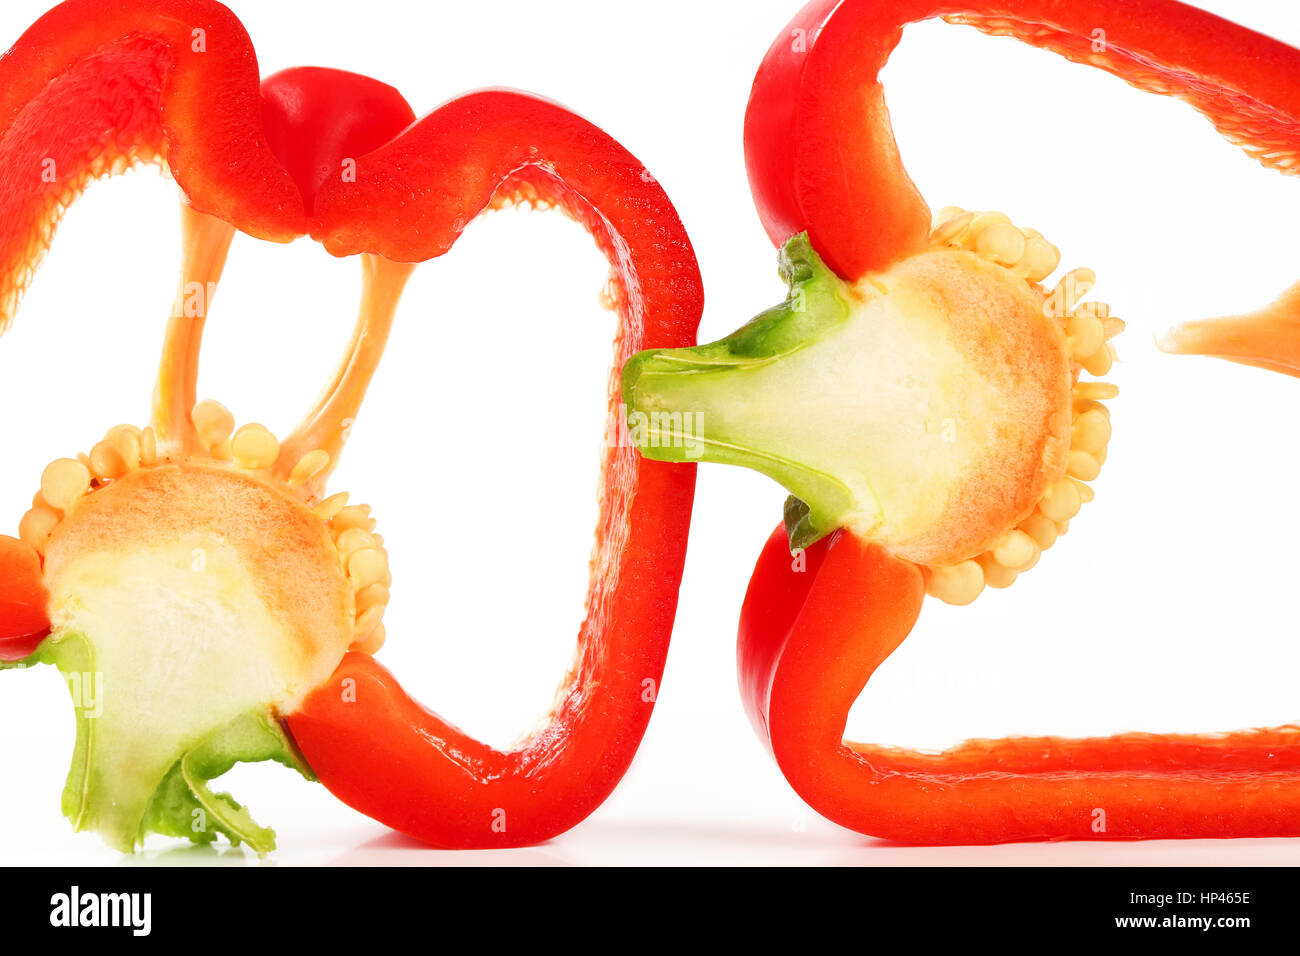 detail of two slices of red pepper on white background - Stock Image